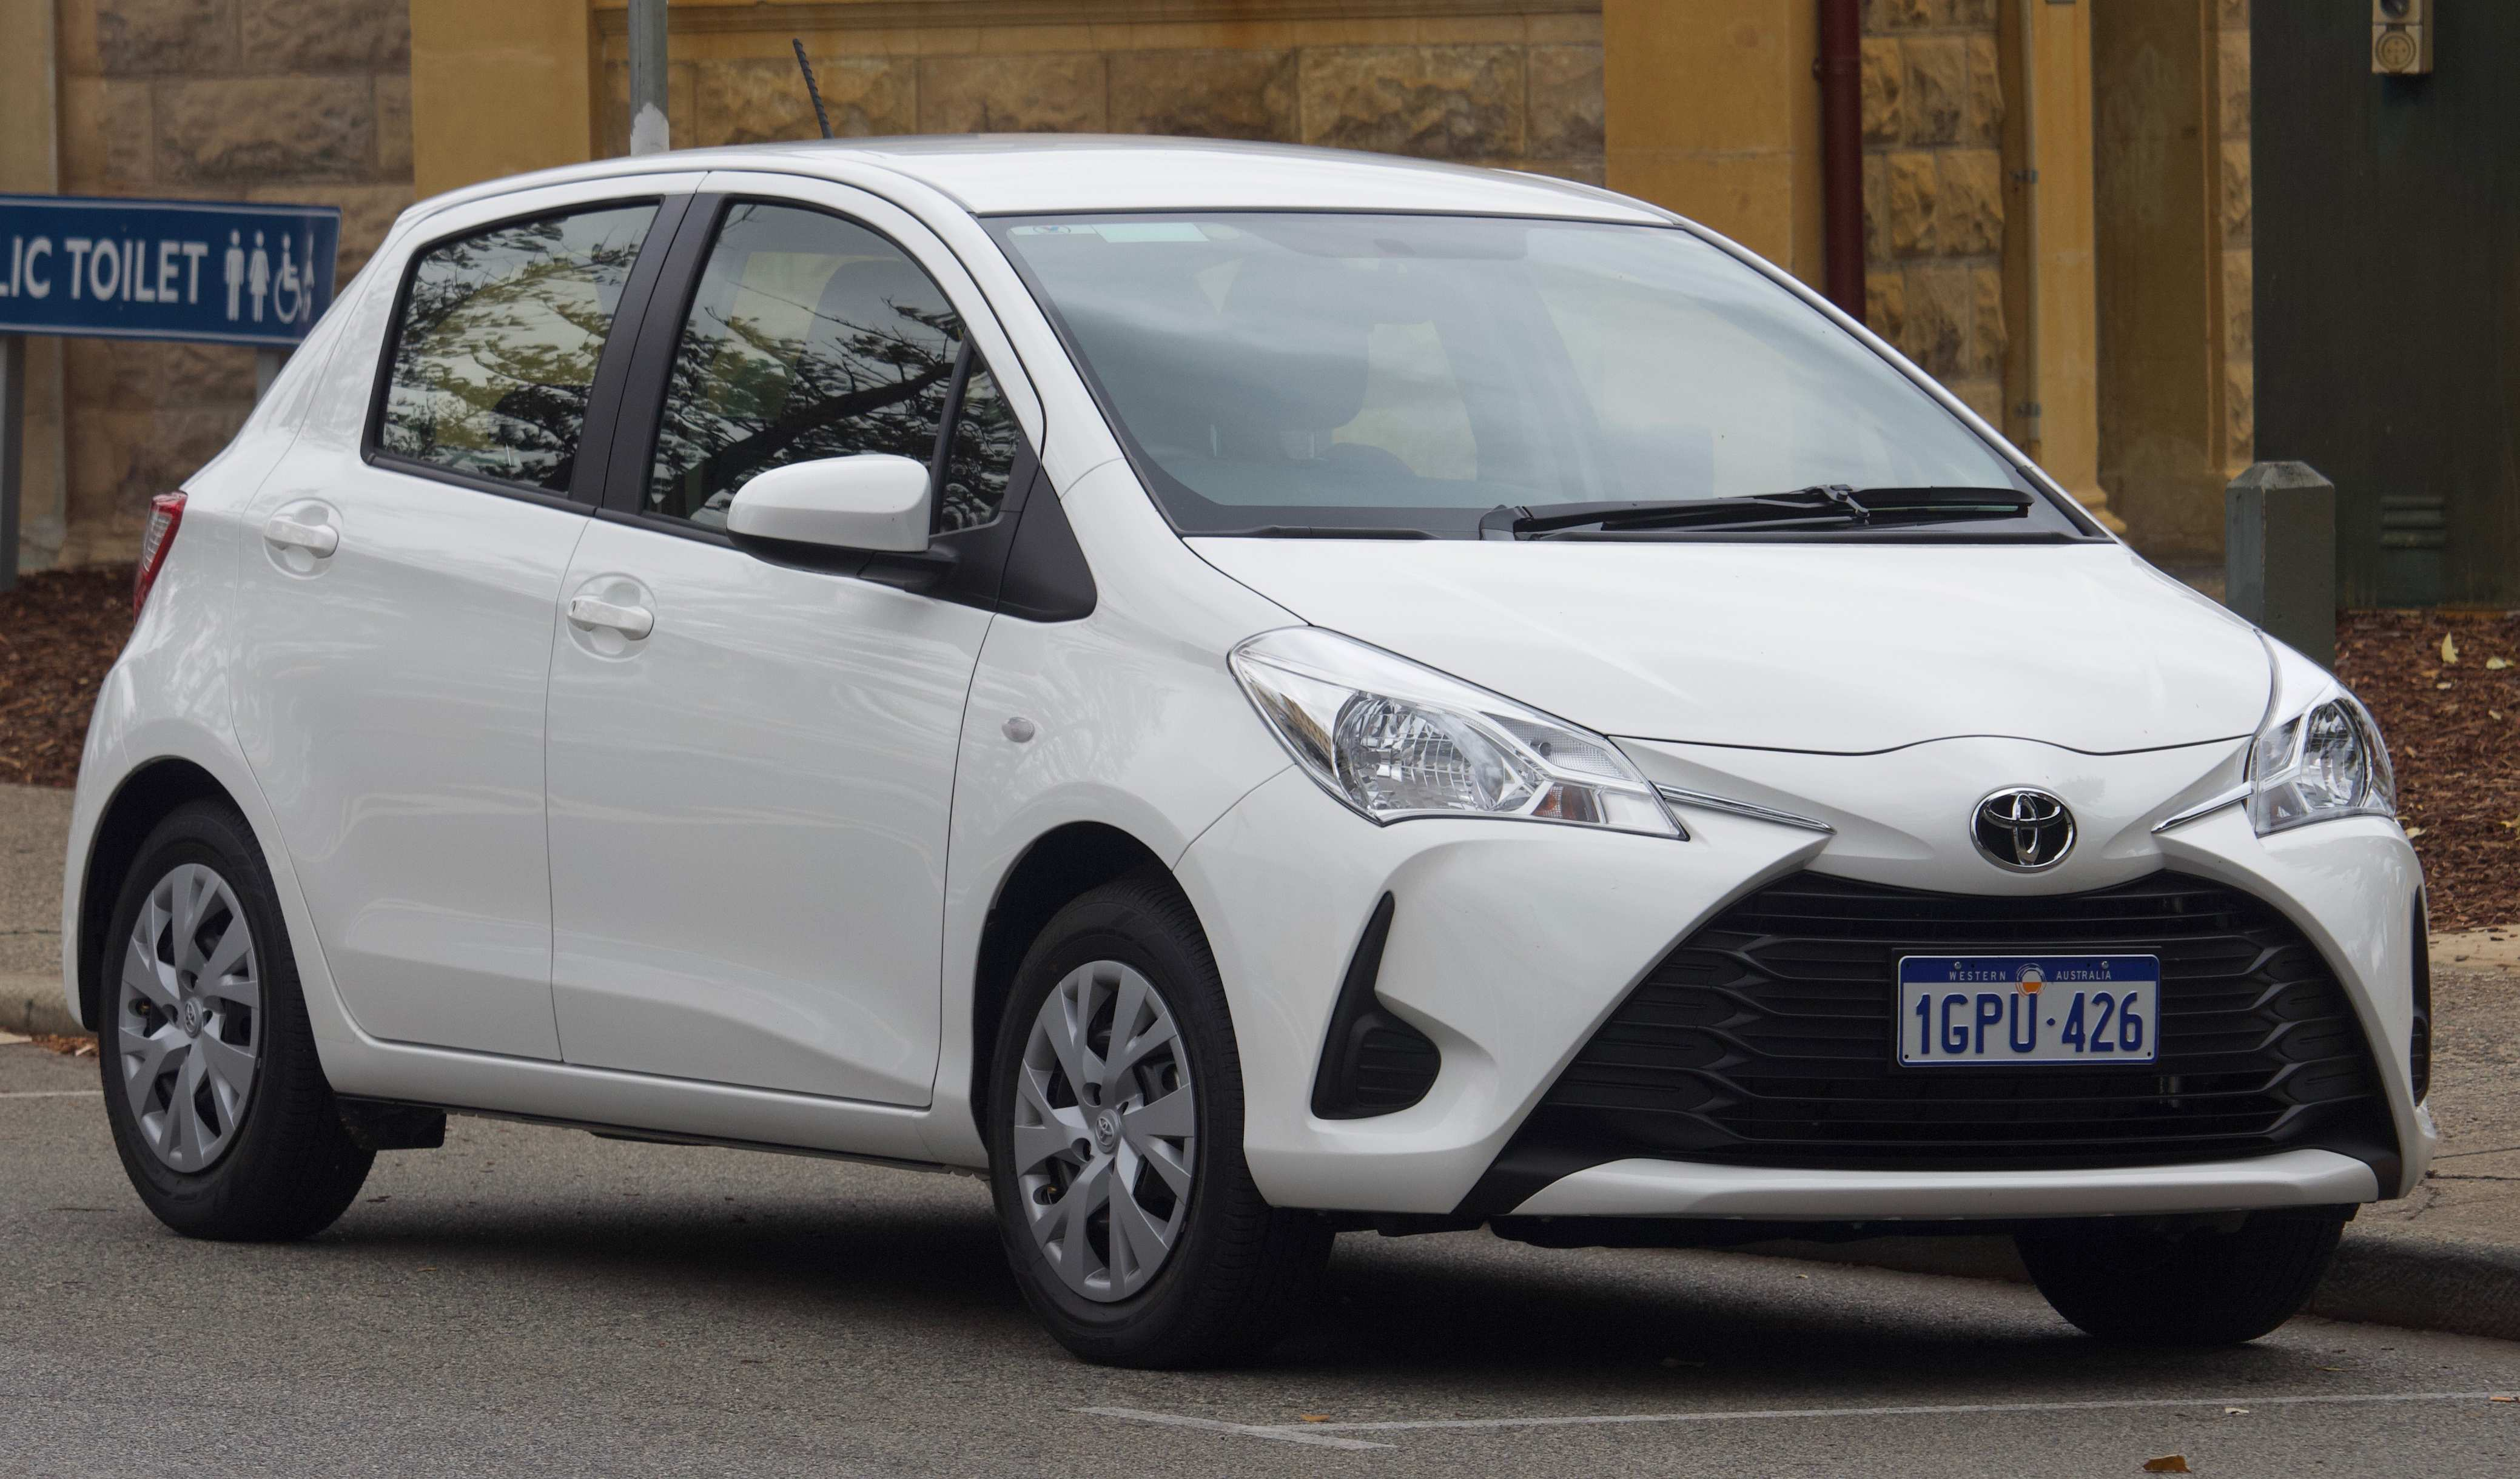 88 Great The Toyota 2019 En Mexico Specs And Review Review by The Toyota 2019 En Mexico Specs And Review